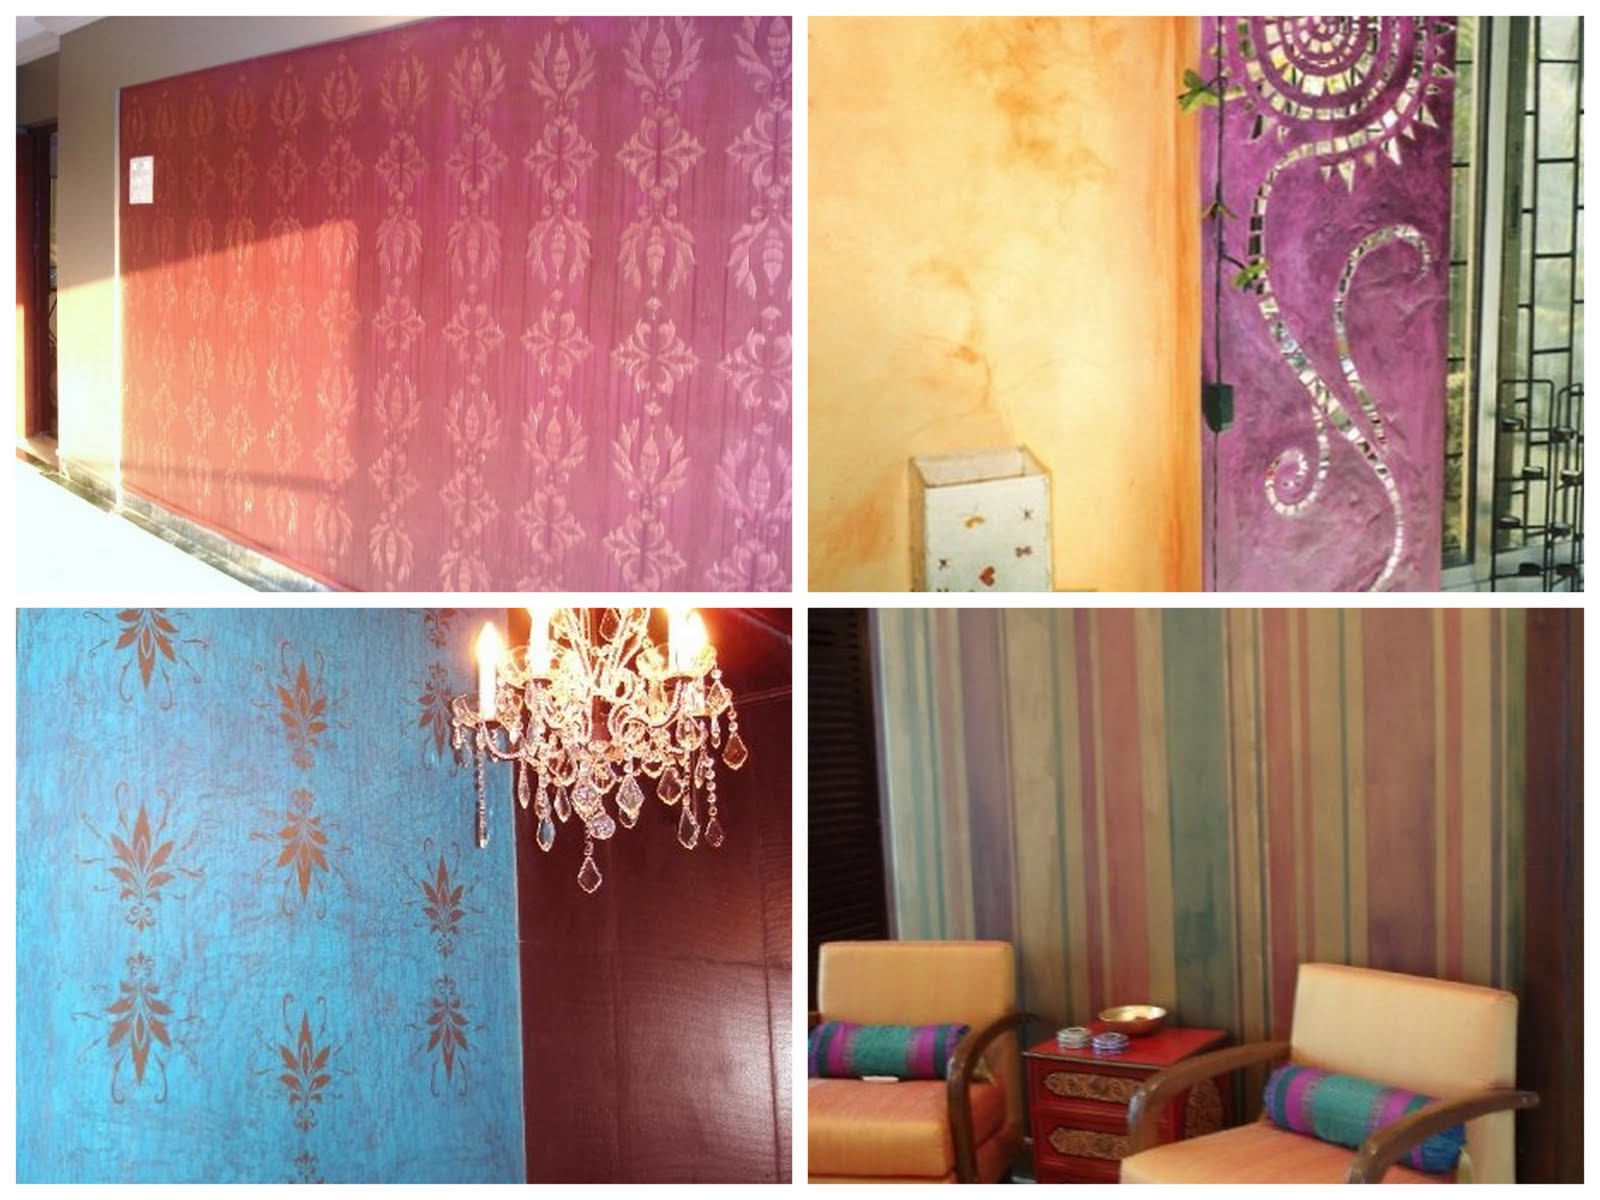 Asian Paints Interior Wall Designs textured paints for interior